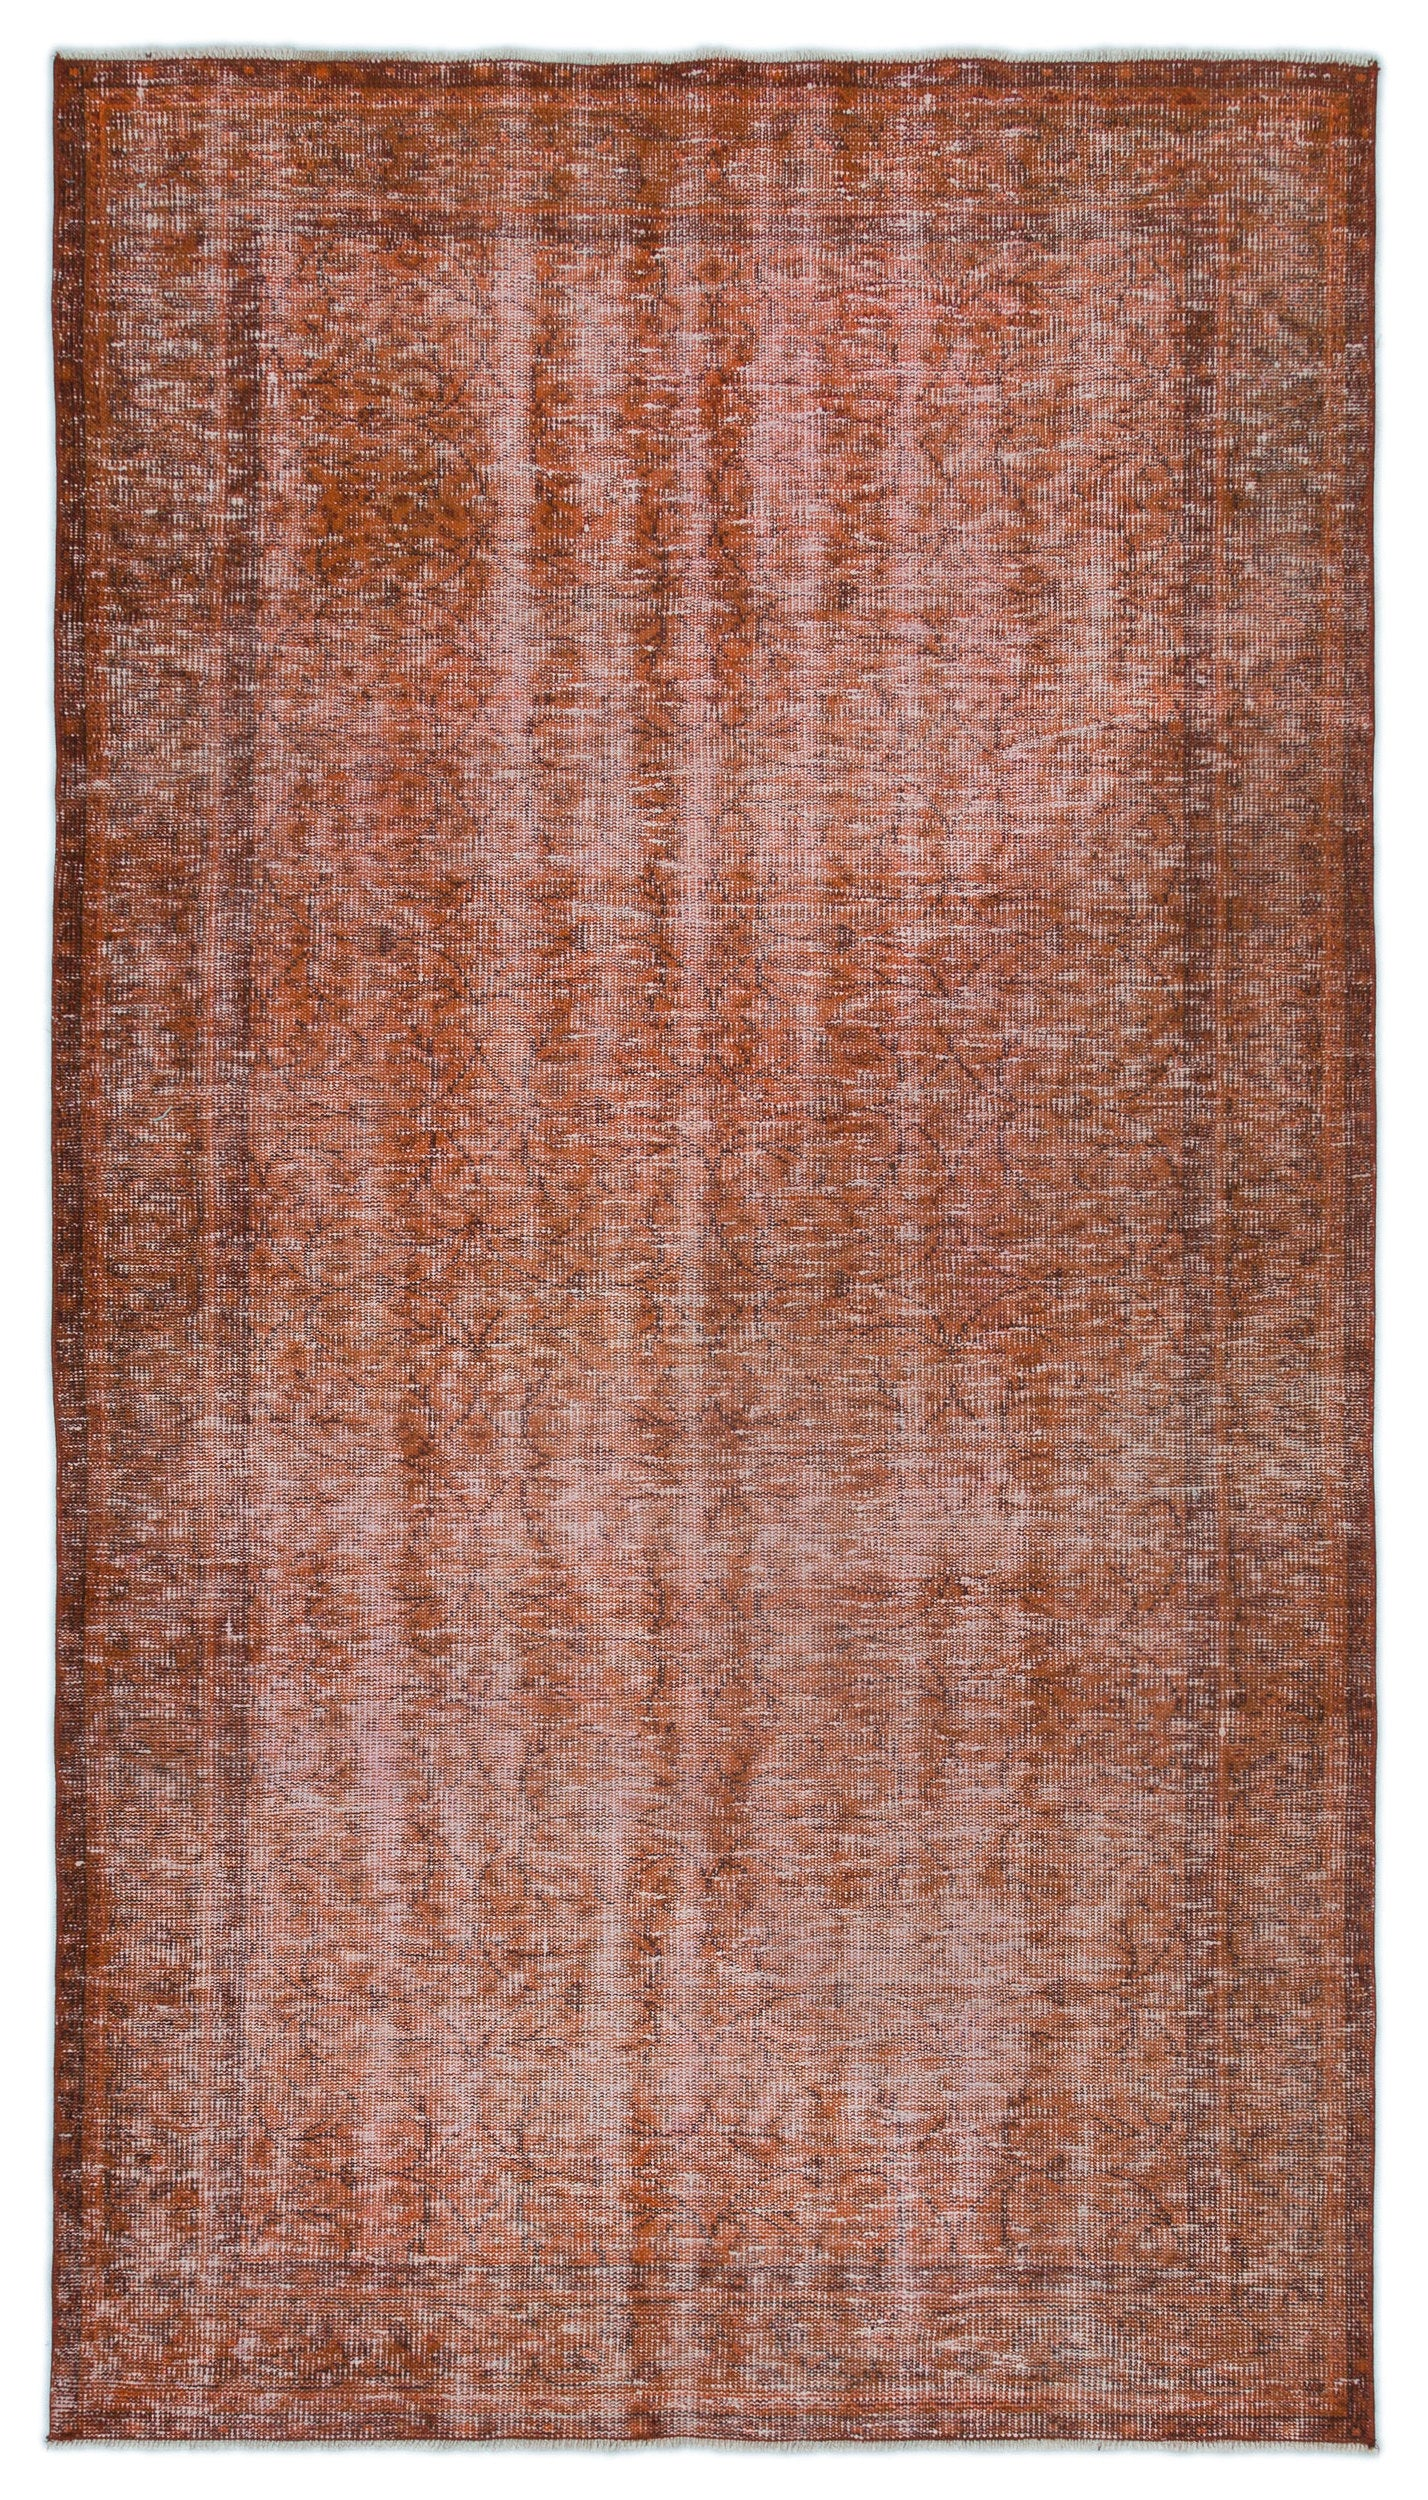 Brown Over Dyed Vintage Rug 4'6'' x 8'0'' ft 137 x 244 cm